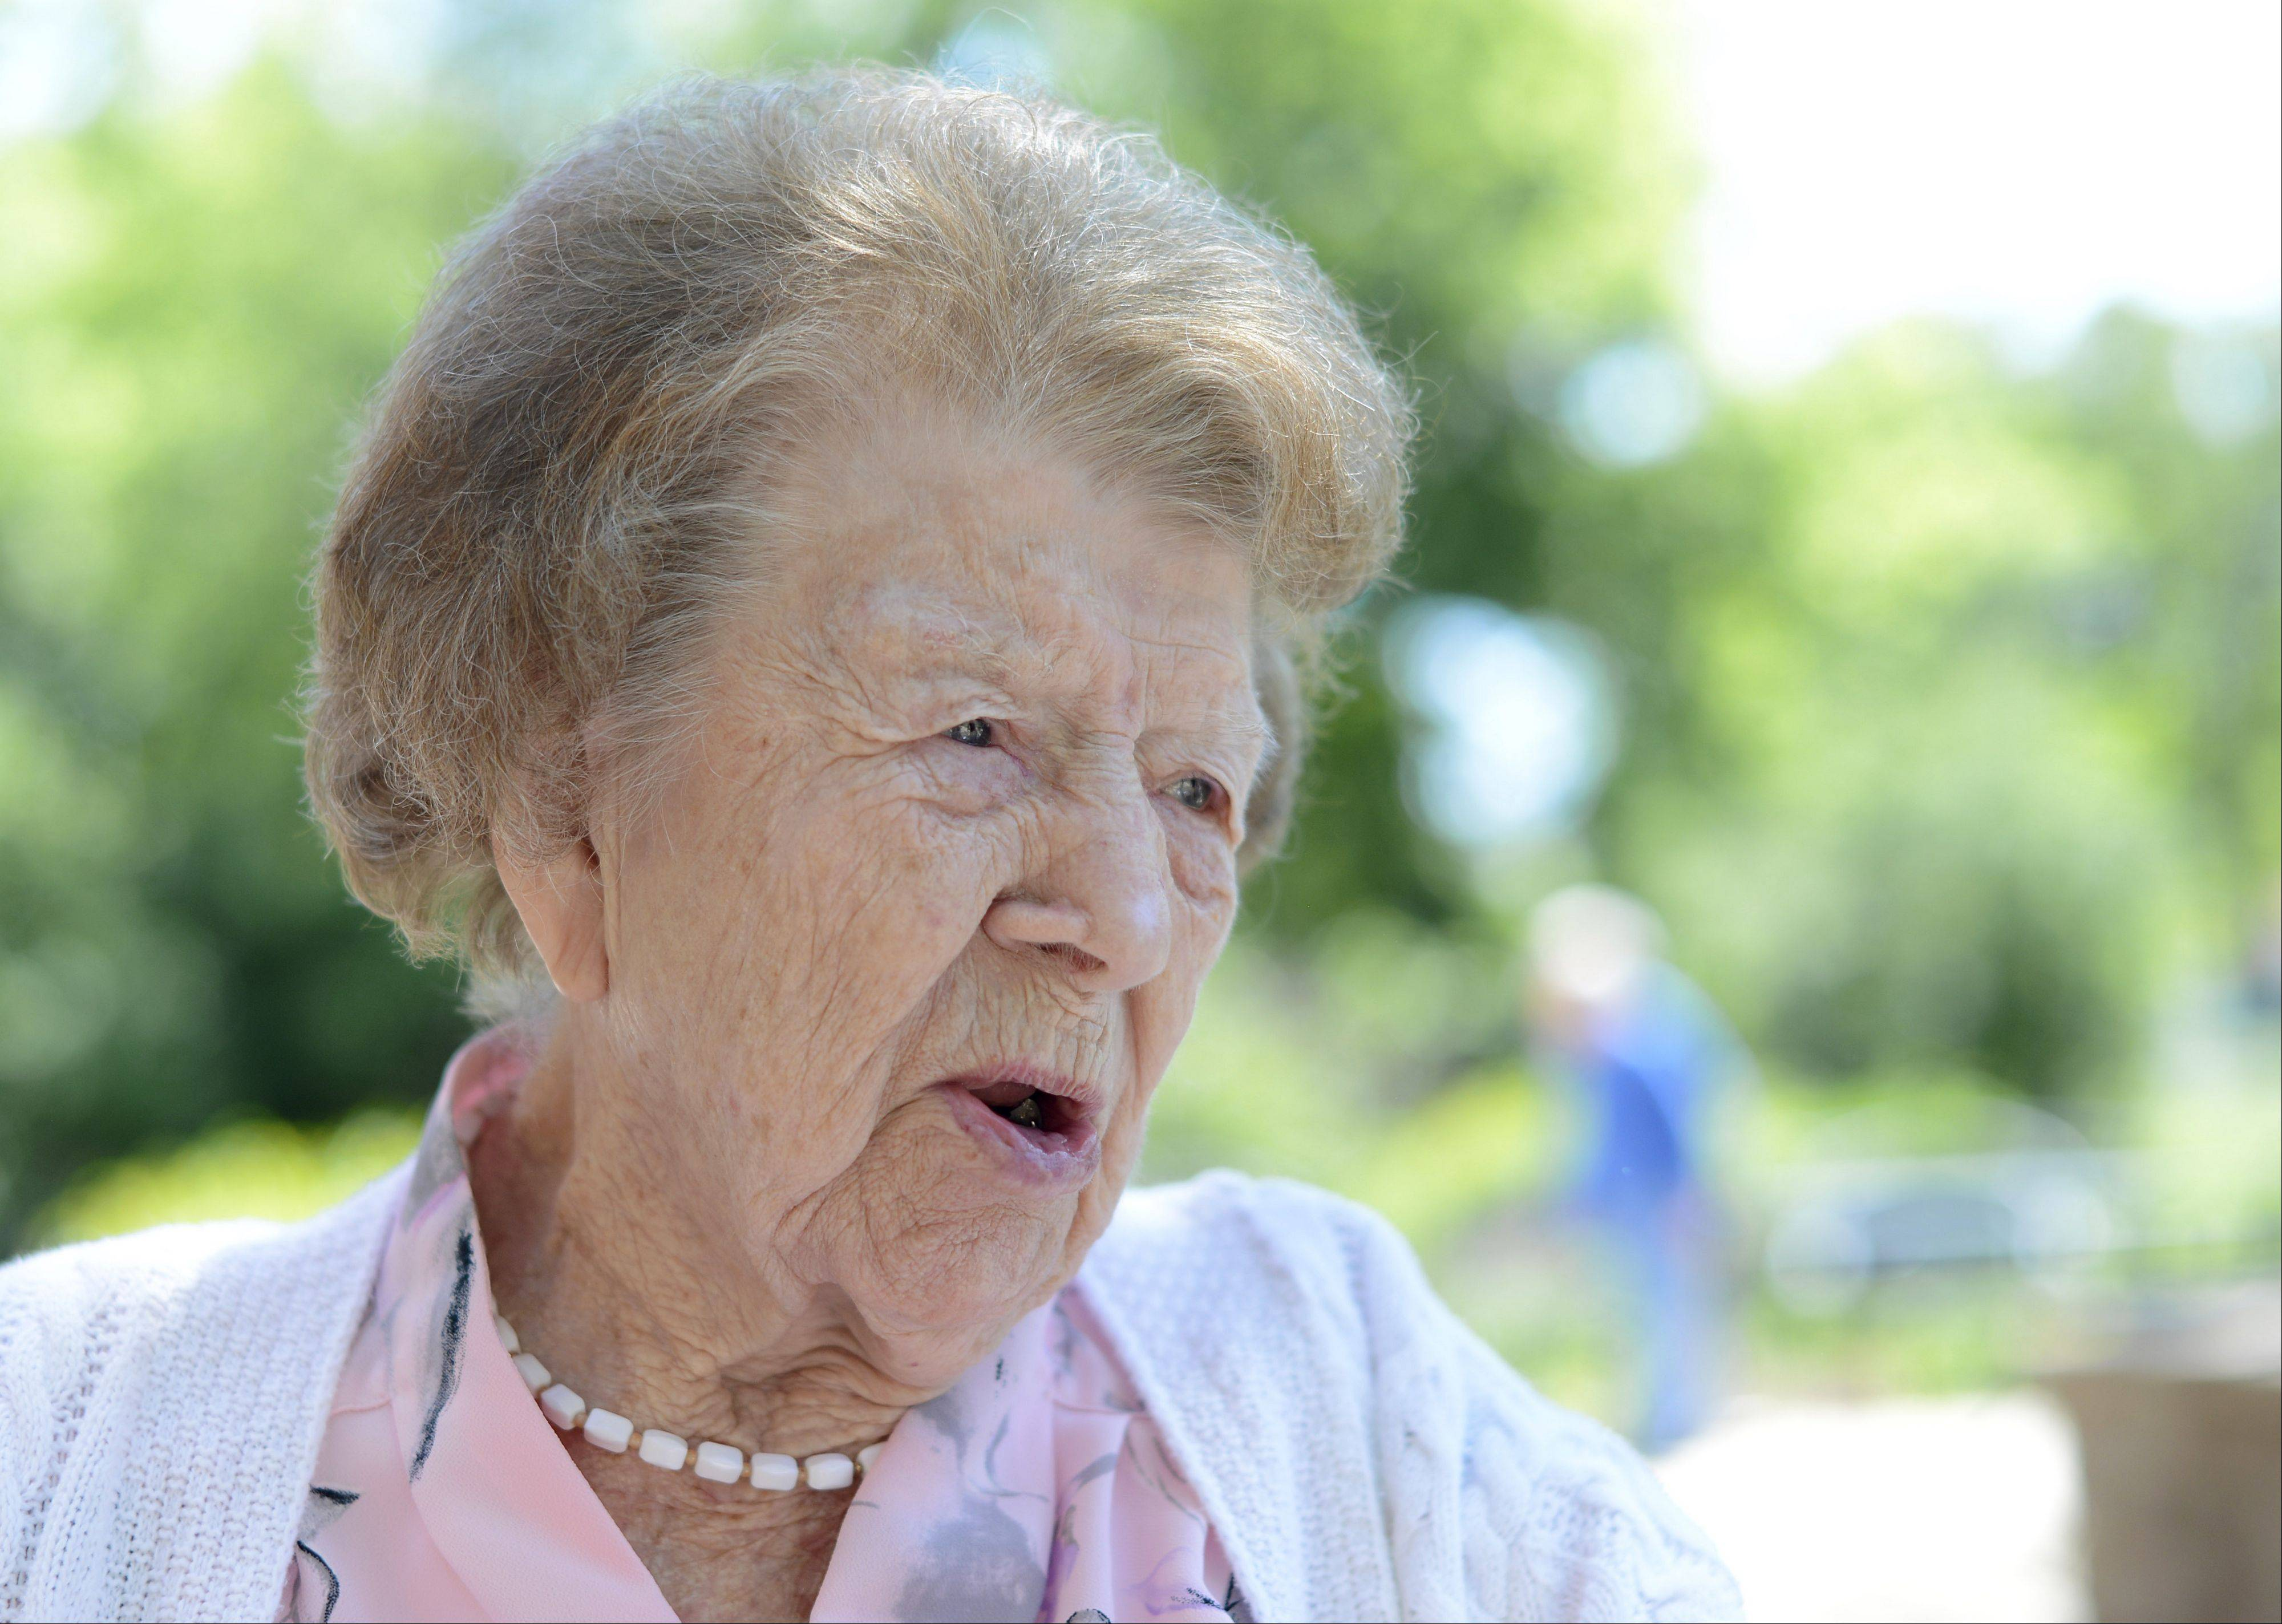 Lena Agnes �Aggie� Petzinger turns 102 on Sunday. A resident of Tower Hill Healthcare Center in South Elgin, her favorite saying has been, �You�re never too old until you turn 102.� She recently changed that to 103.